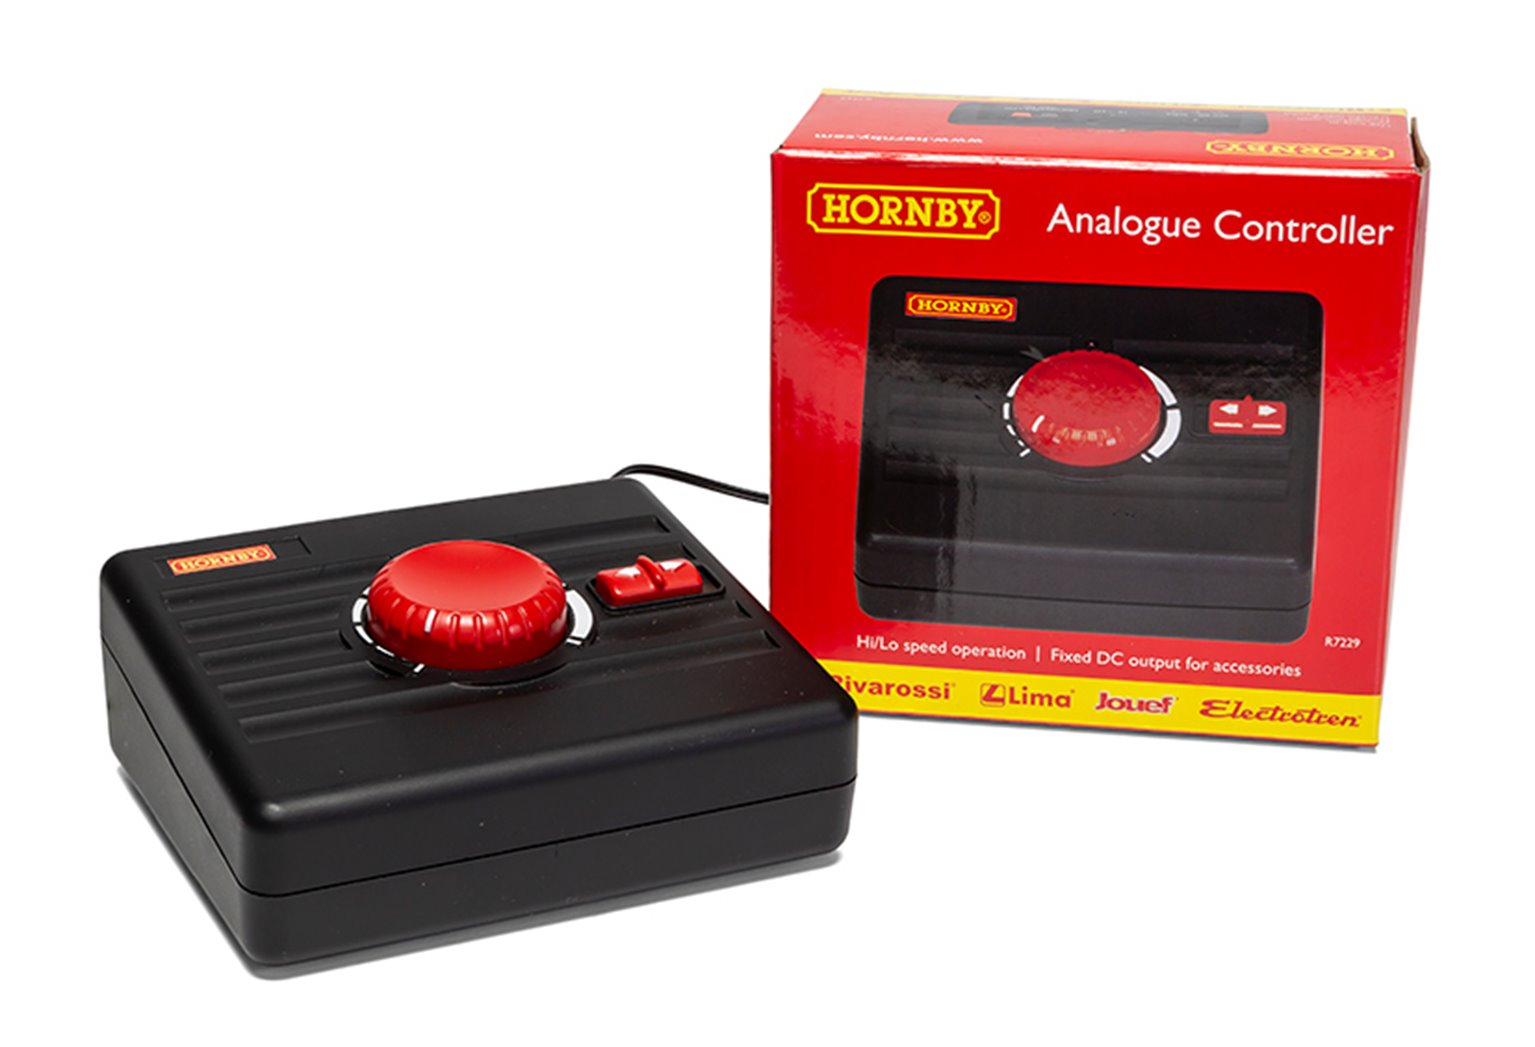 Analogue Train and Accessory Controller